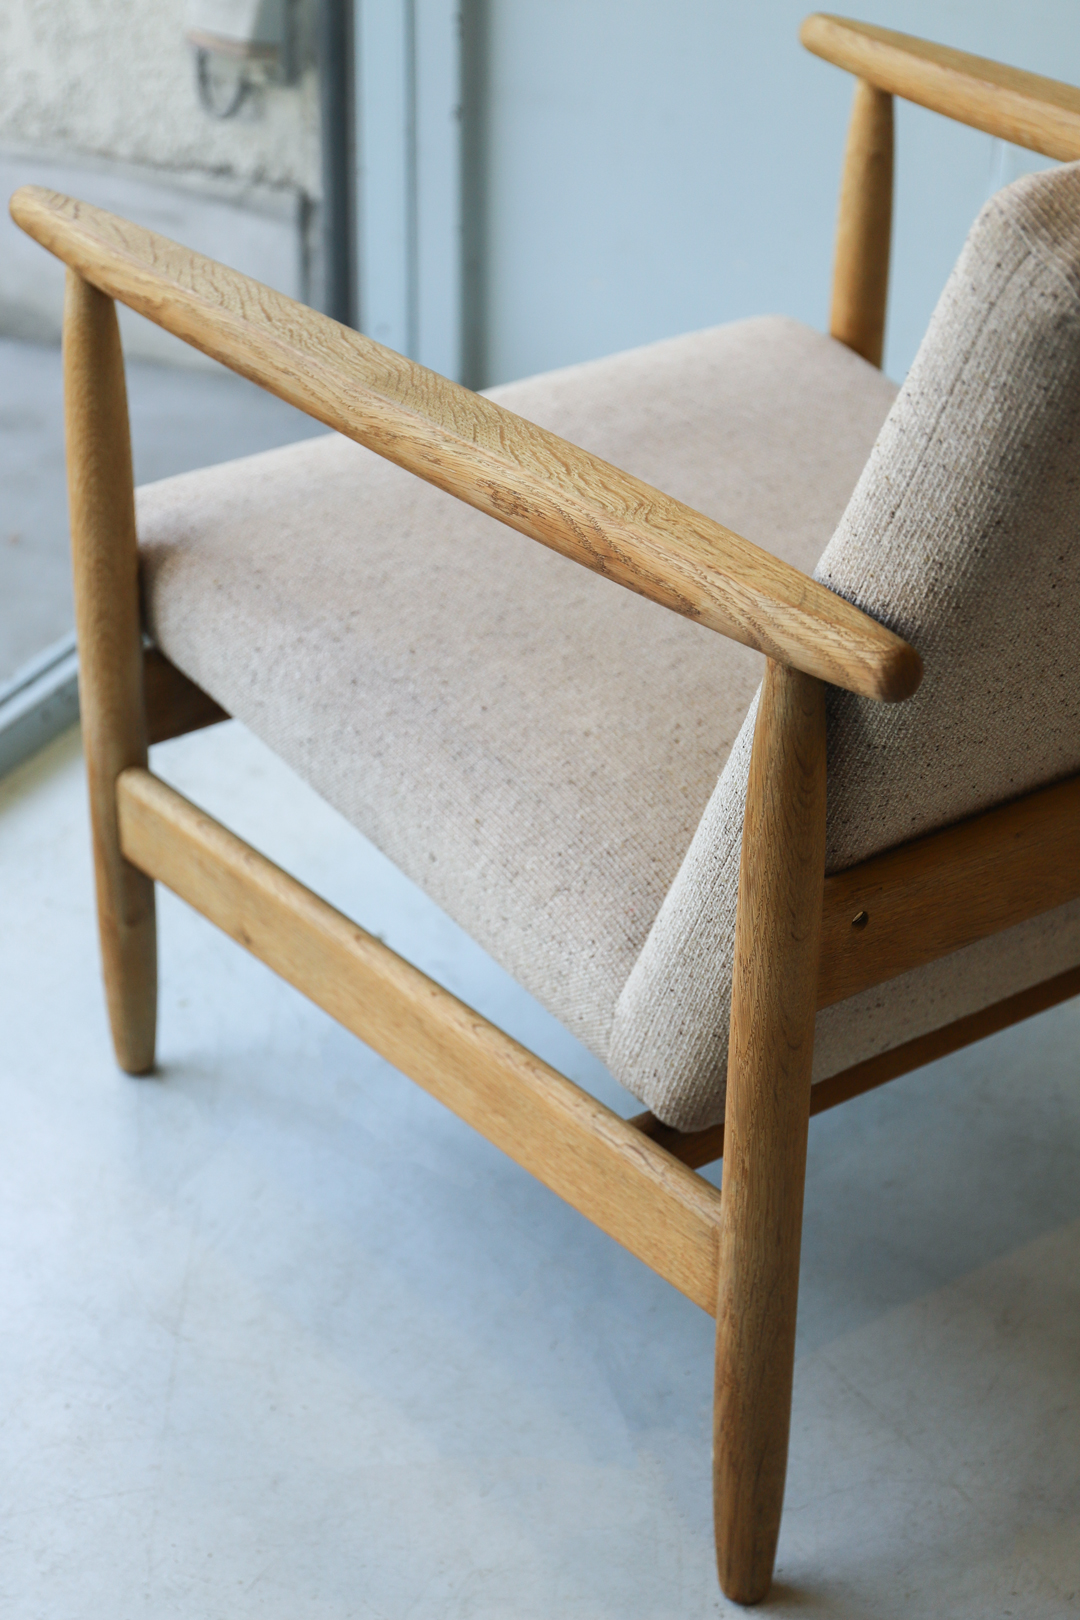 FDB Møbler Easy Chair Model J-65 by Ejvind A.Johansson/デンマークヴィンテージ イージーチェア 1Pソファ アイヴァン・A・ヨハンソン 北欧家具